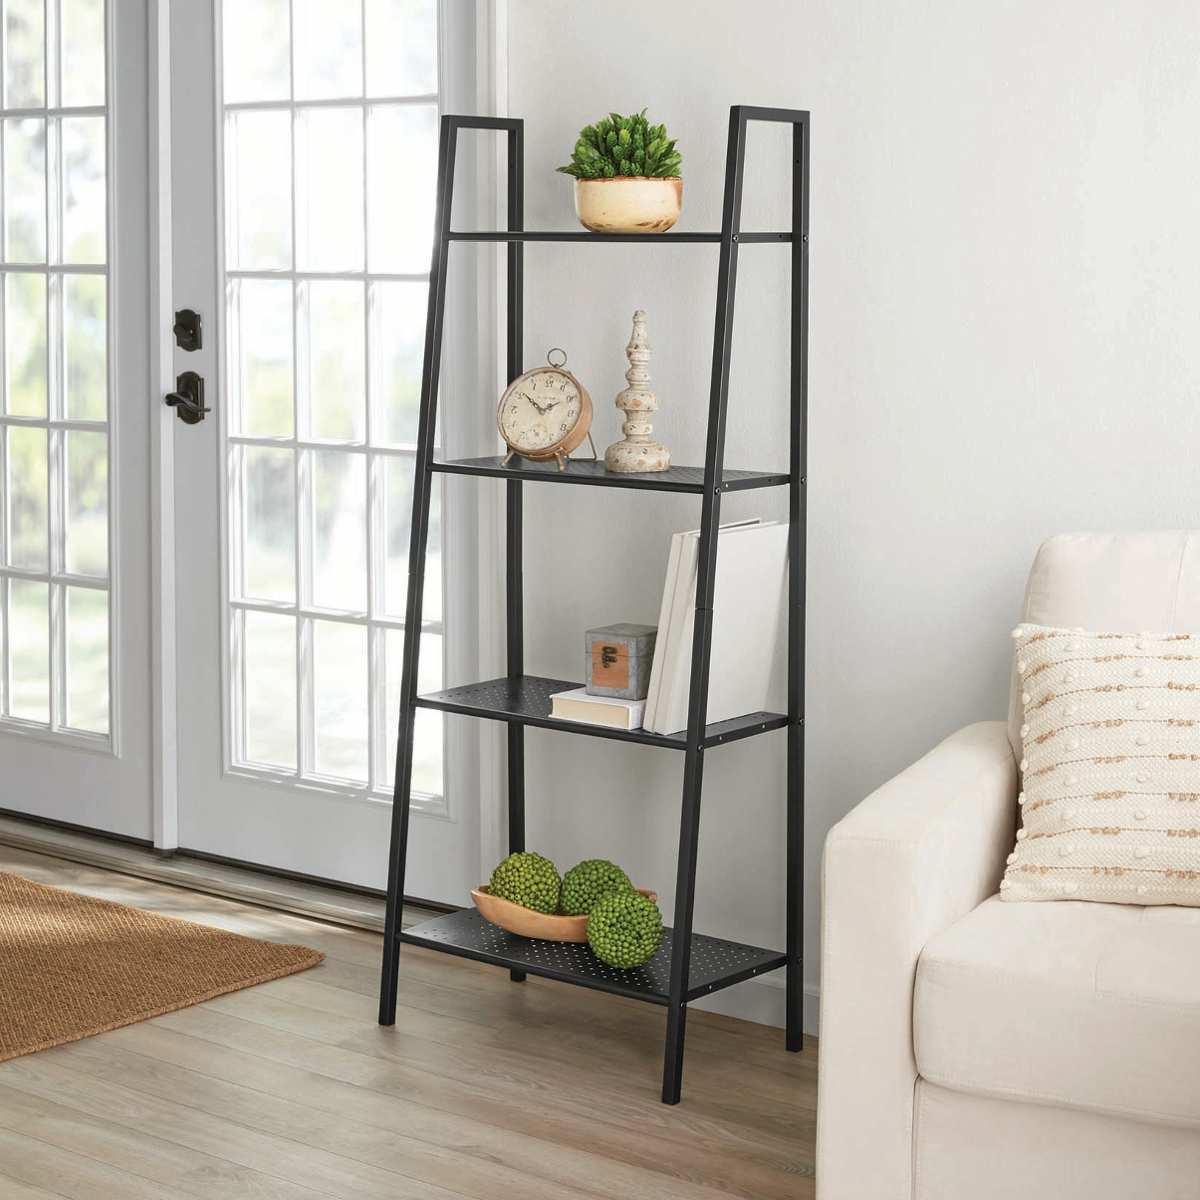 4 Tiers Wall Leaning Ladder Shelf Bookcase Bookshelf Storage Rack Shelves Storage Stand Unit Organizer for Office Home Bedroom